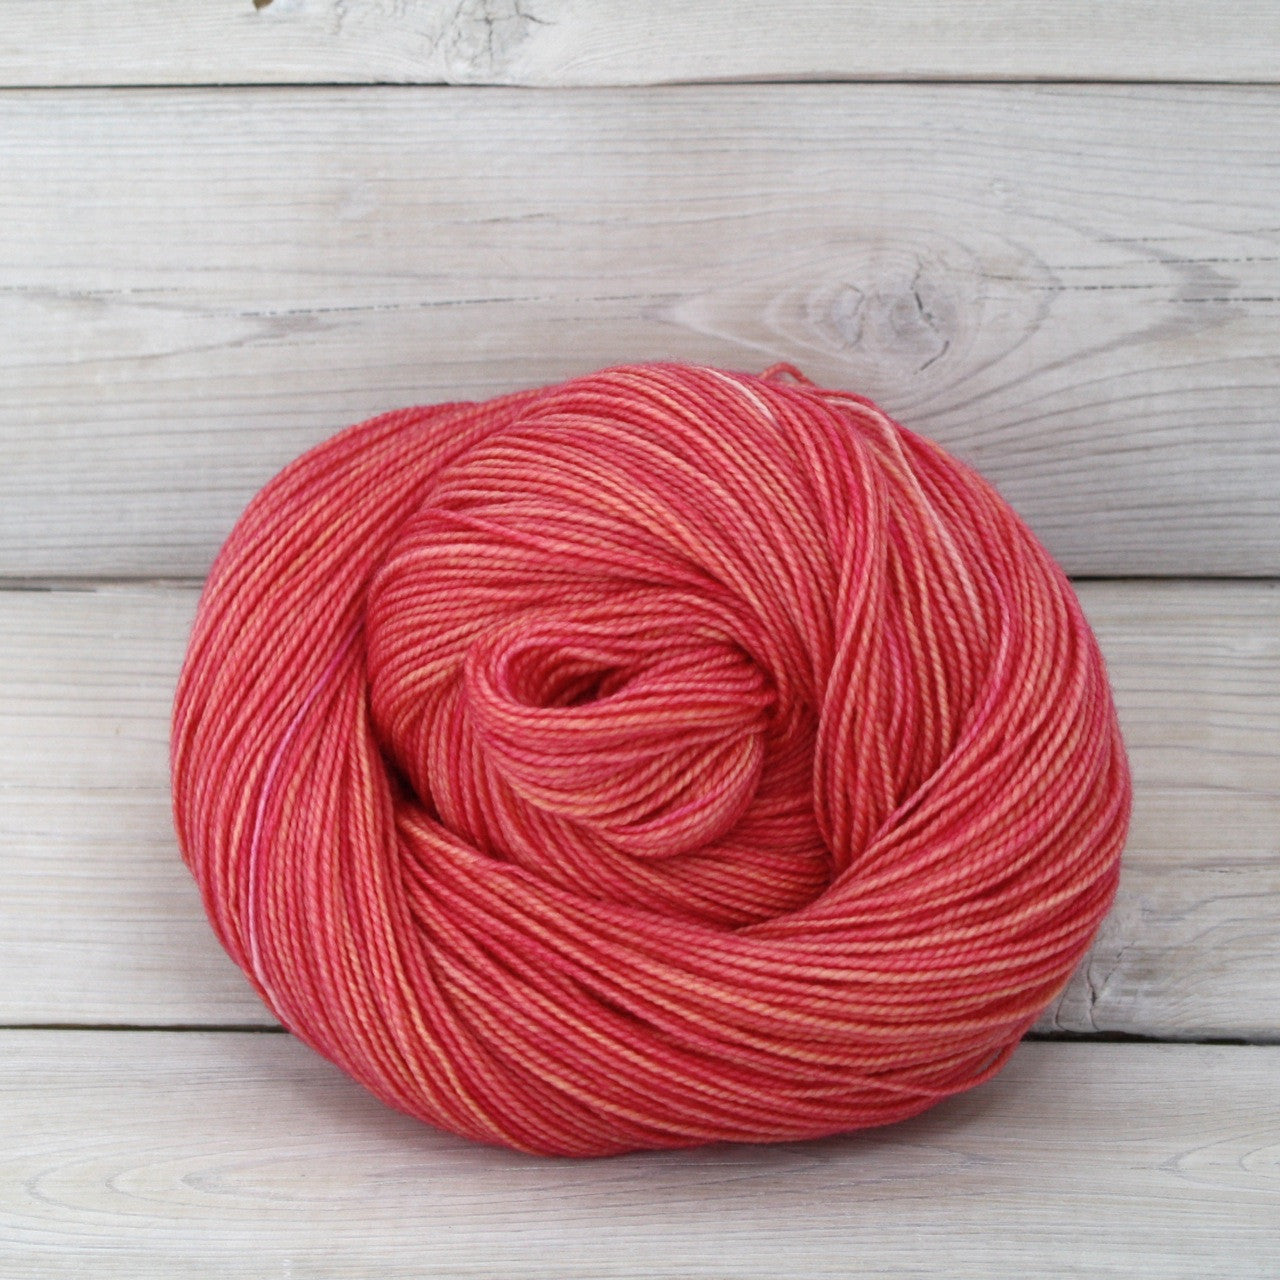 Celeste Yarn | Colorway: Sorbet